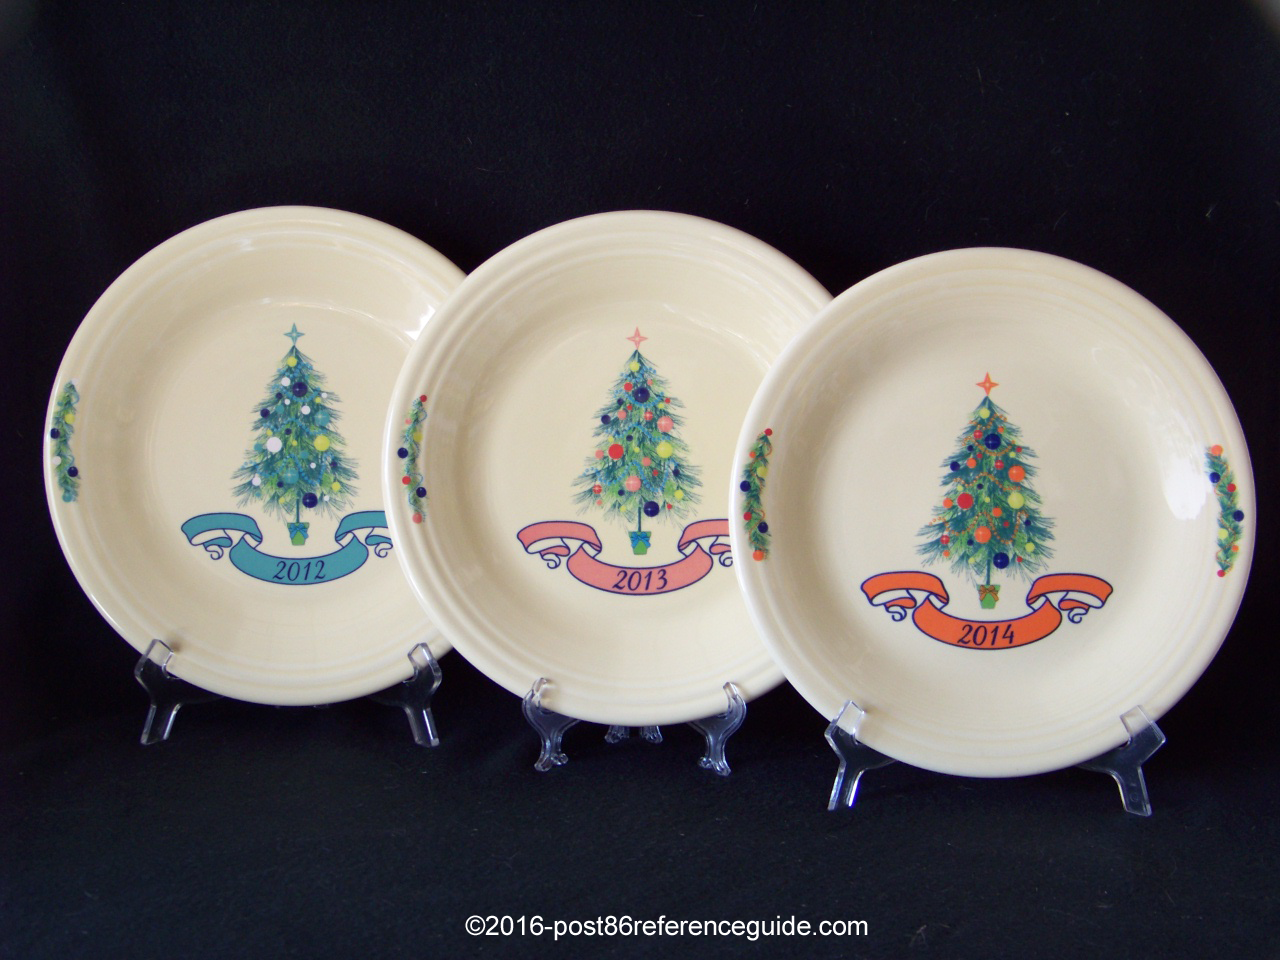 Fiesta® Dillards Christmas Yearly Dinner Plates & Yearly Christmas Tree - Post 86 Reference Guide